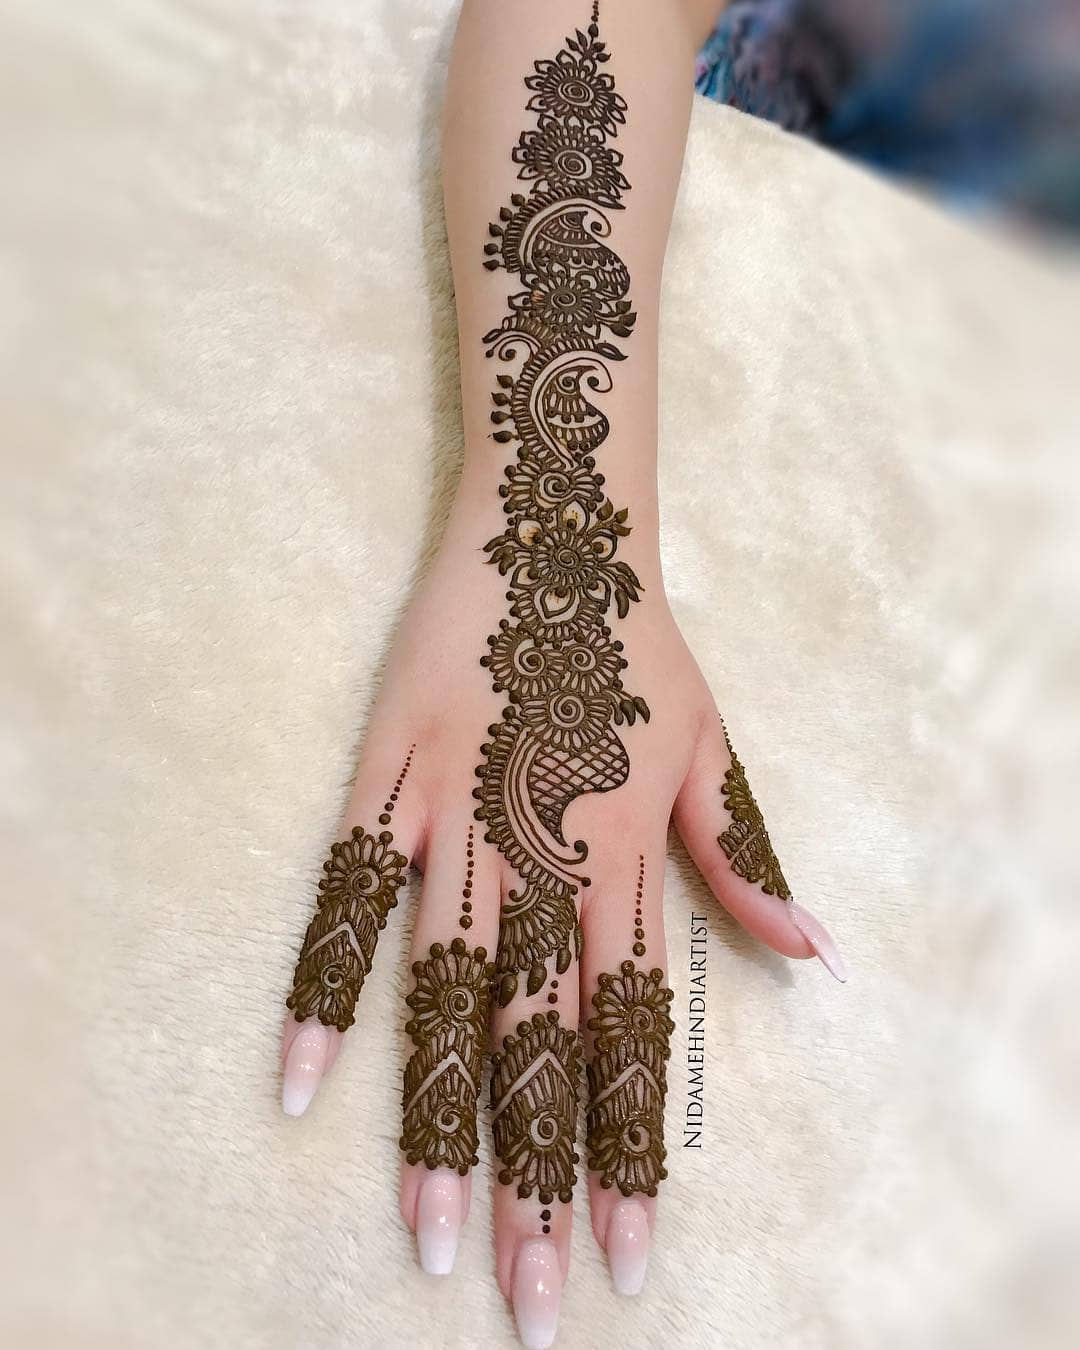 A floral trail: Beautiful & Simple Mehndi Designs for Hand